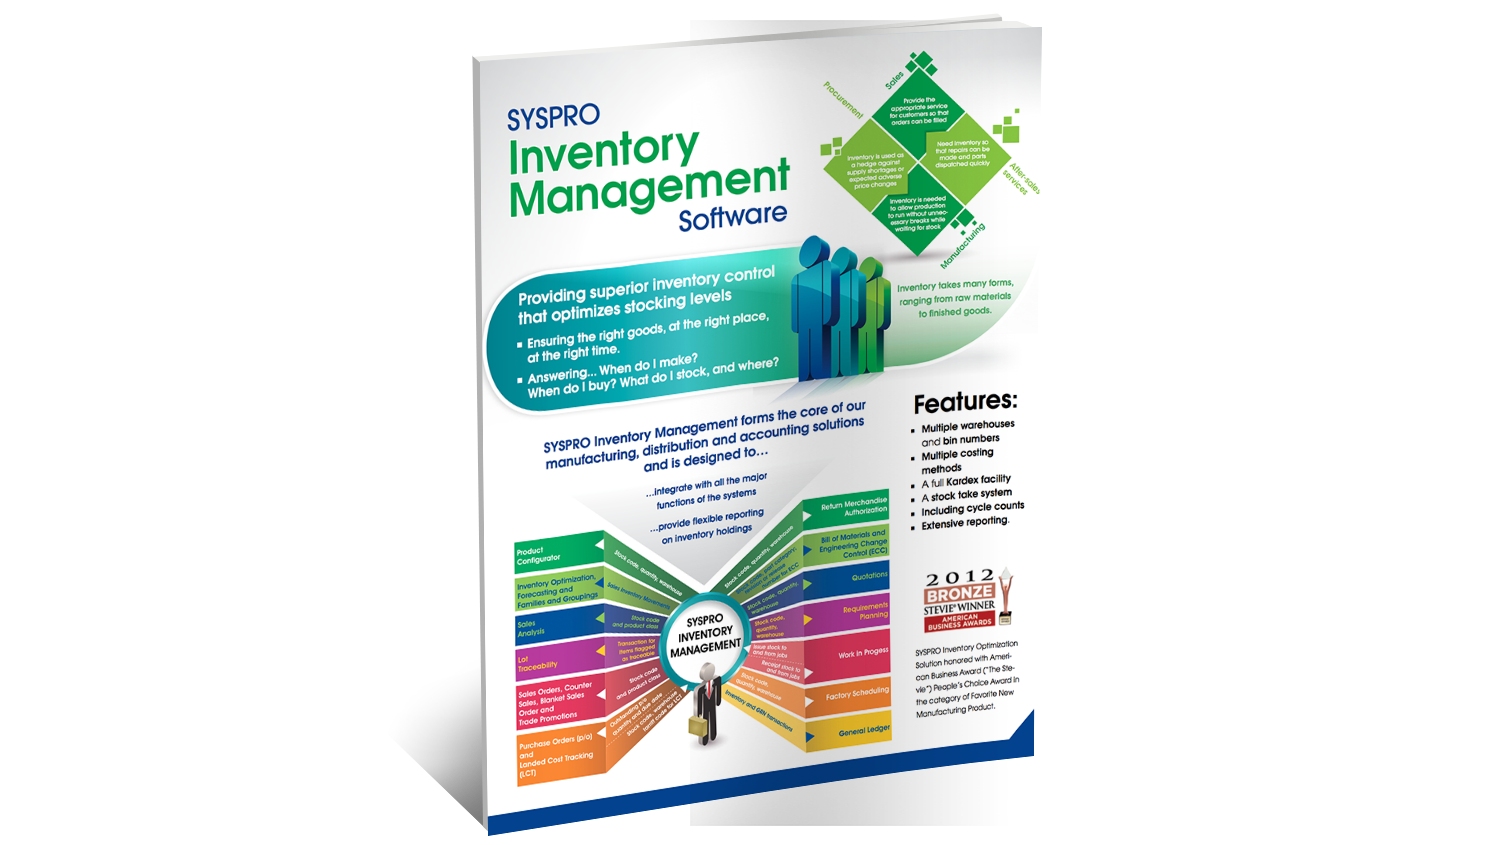 SYSPRO Inventory Management Software - SYSPRO Corporate